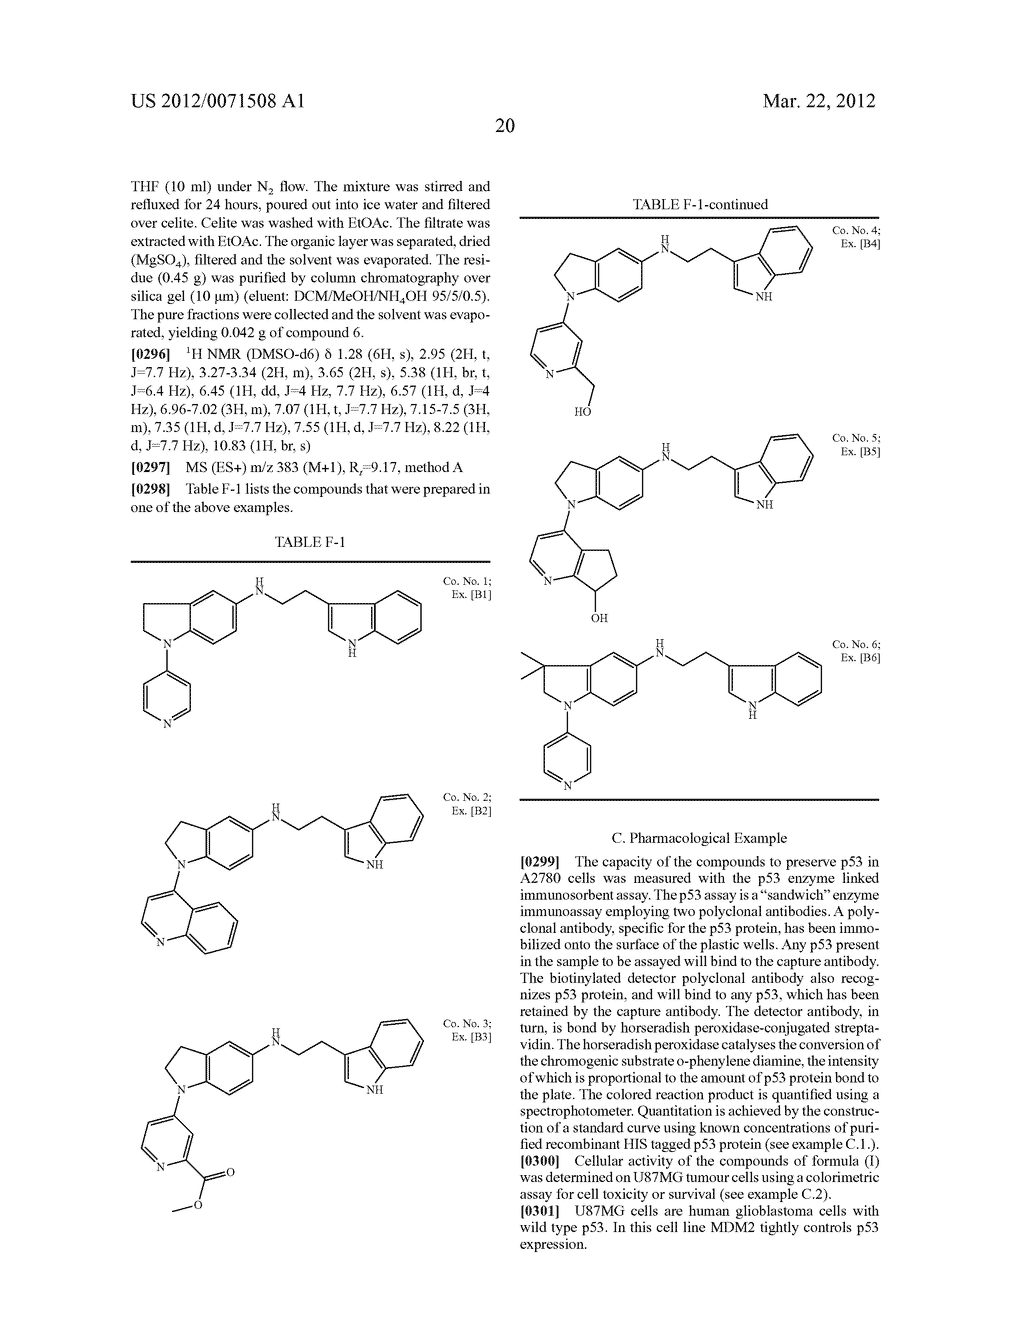 CYCLIC-ALKYLAMINE DERIVATIVES AS INHIBITORS OF THE INTERACTION BETWEEN     MDM2 AND P53 - diagram, schematic, and image 21